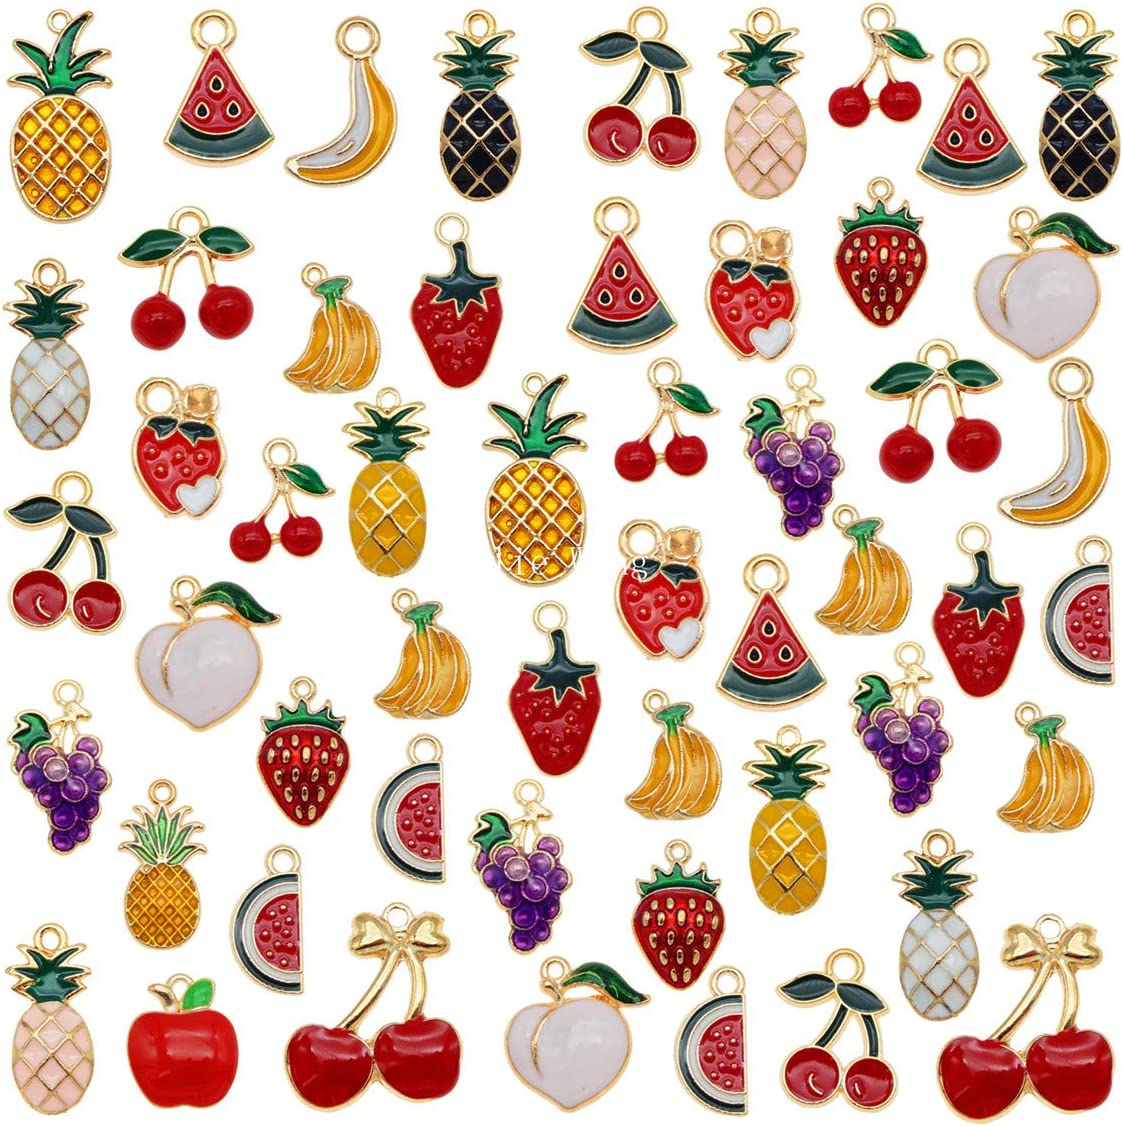 60pcs Mixed Enamel Fruits Charms for Kids Jewelry Necklace Bracelet Earring Making Pineapple Cherry Apple Banana Watermelon Grape